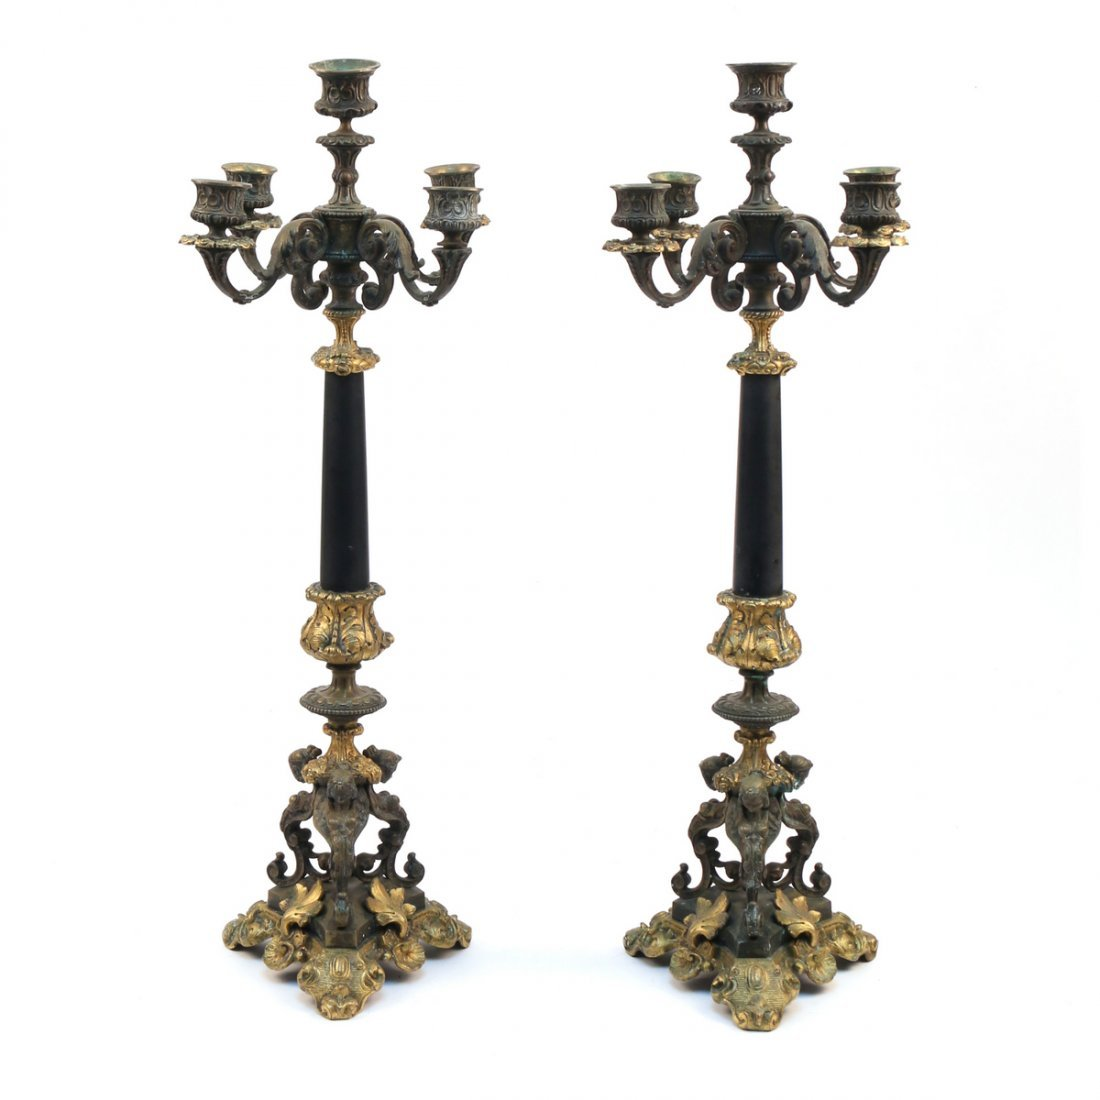 PAIR FRENCH BRONZE & MARBLE CANDELABRA